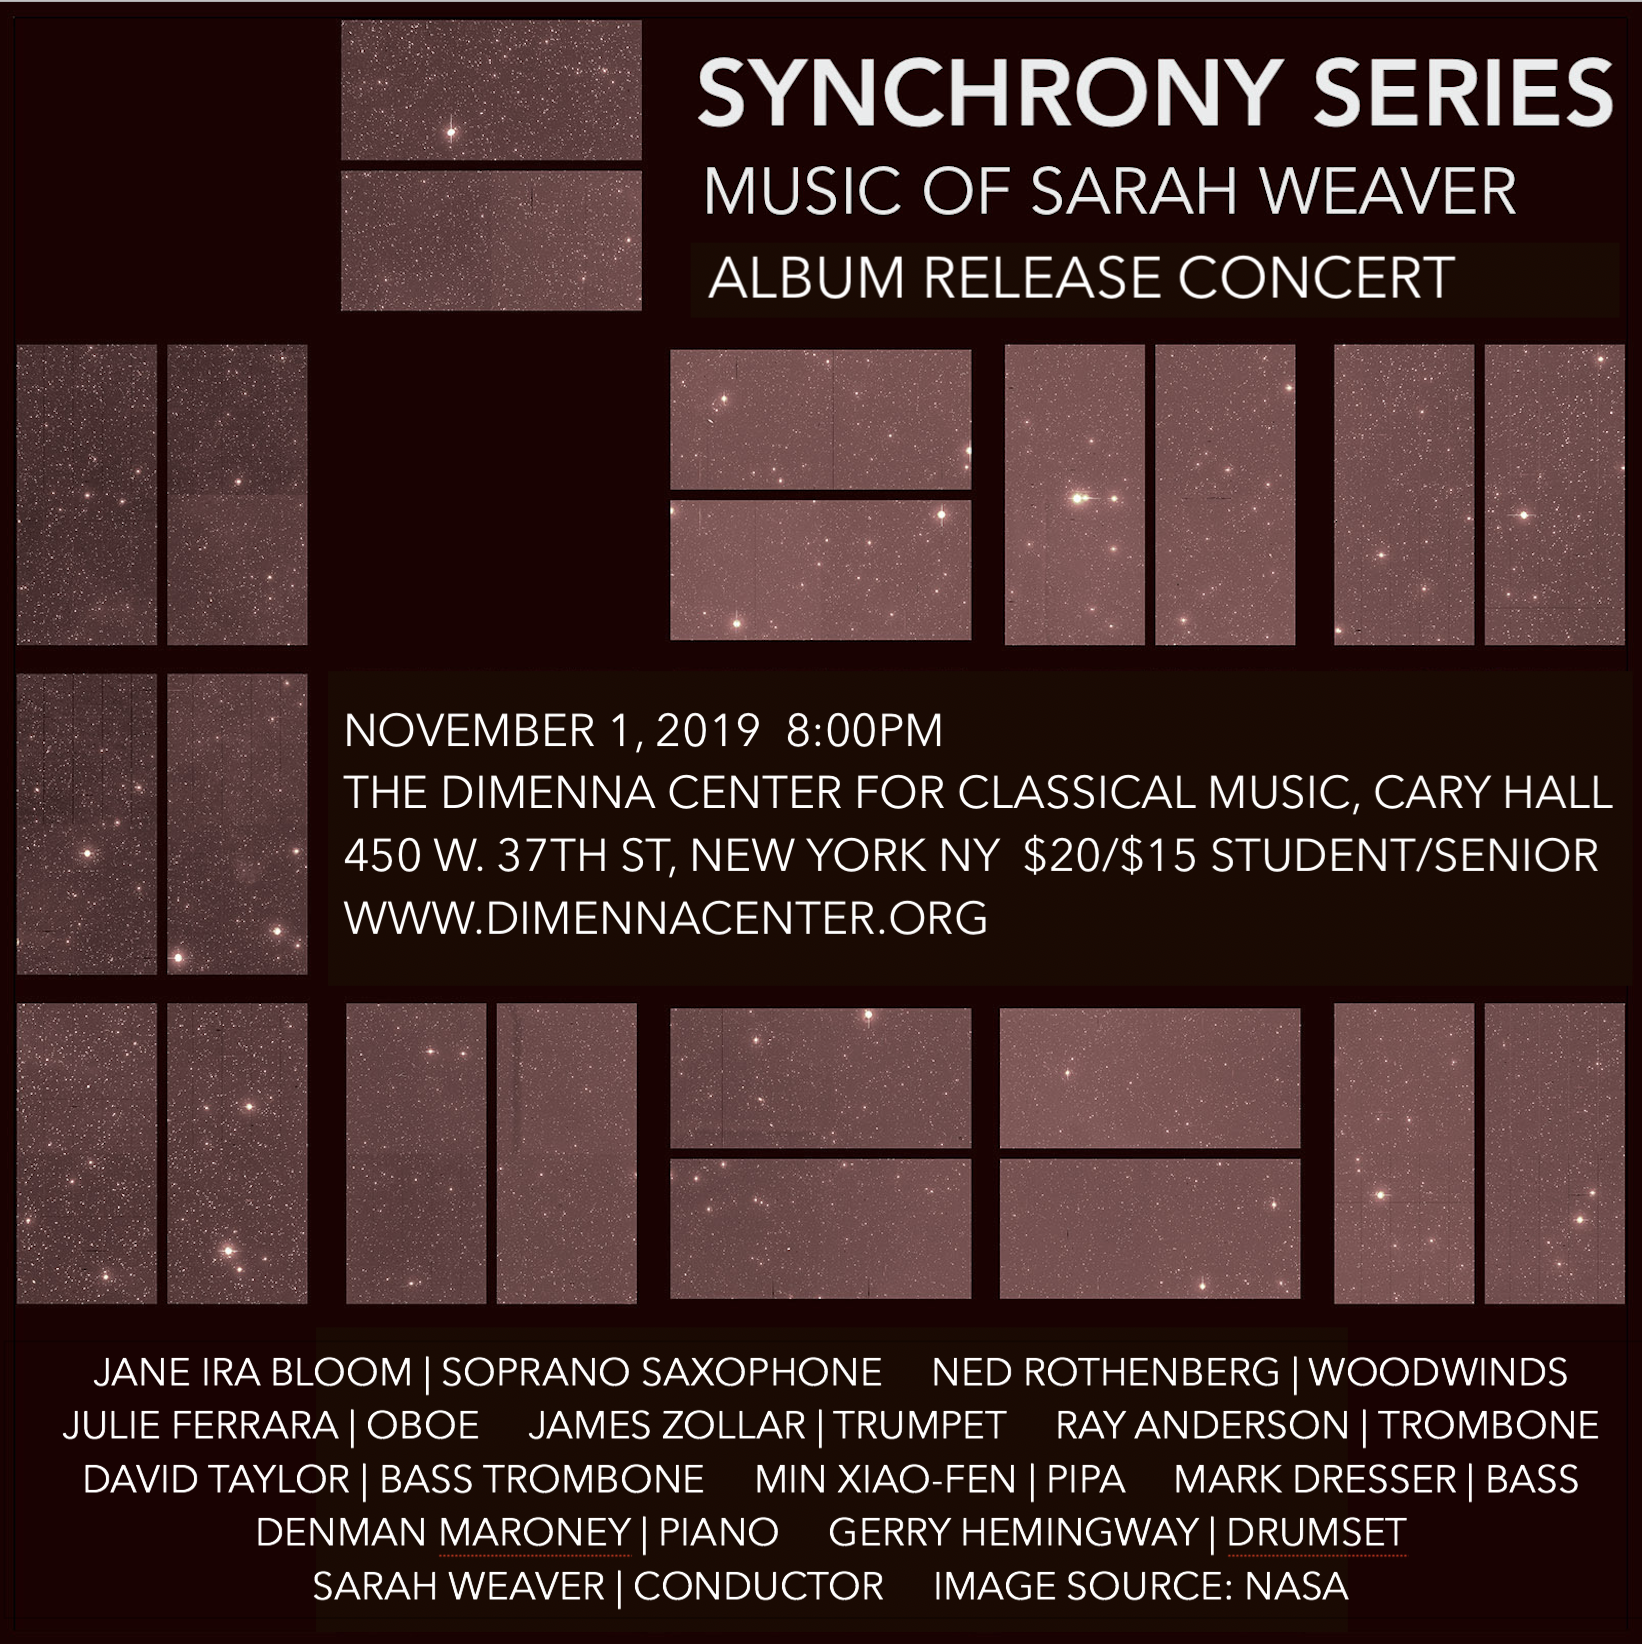 SYNCHRONY SERIES: Album Release Concert - November 1, 2019 8:00PMThe DiMenna Center for Classical Music, Cary Hall450 W. 37th Street, New York NY